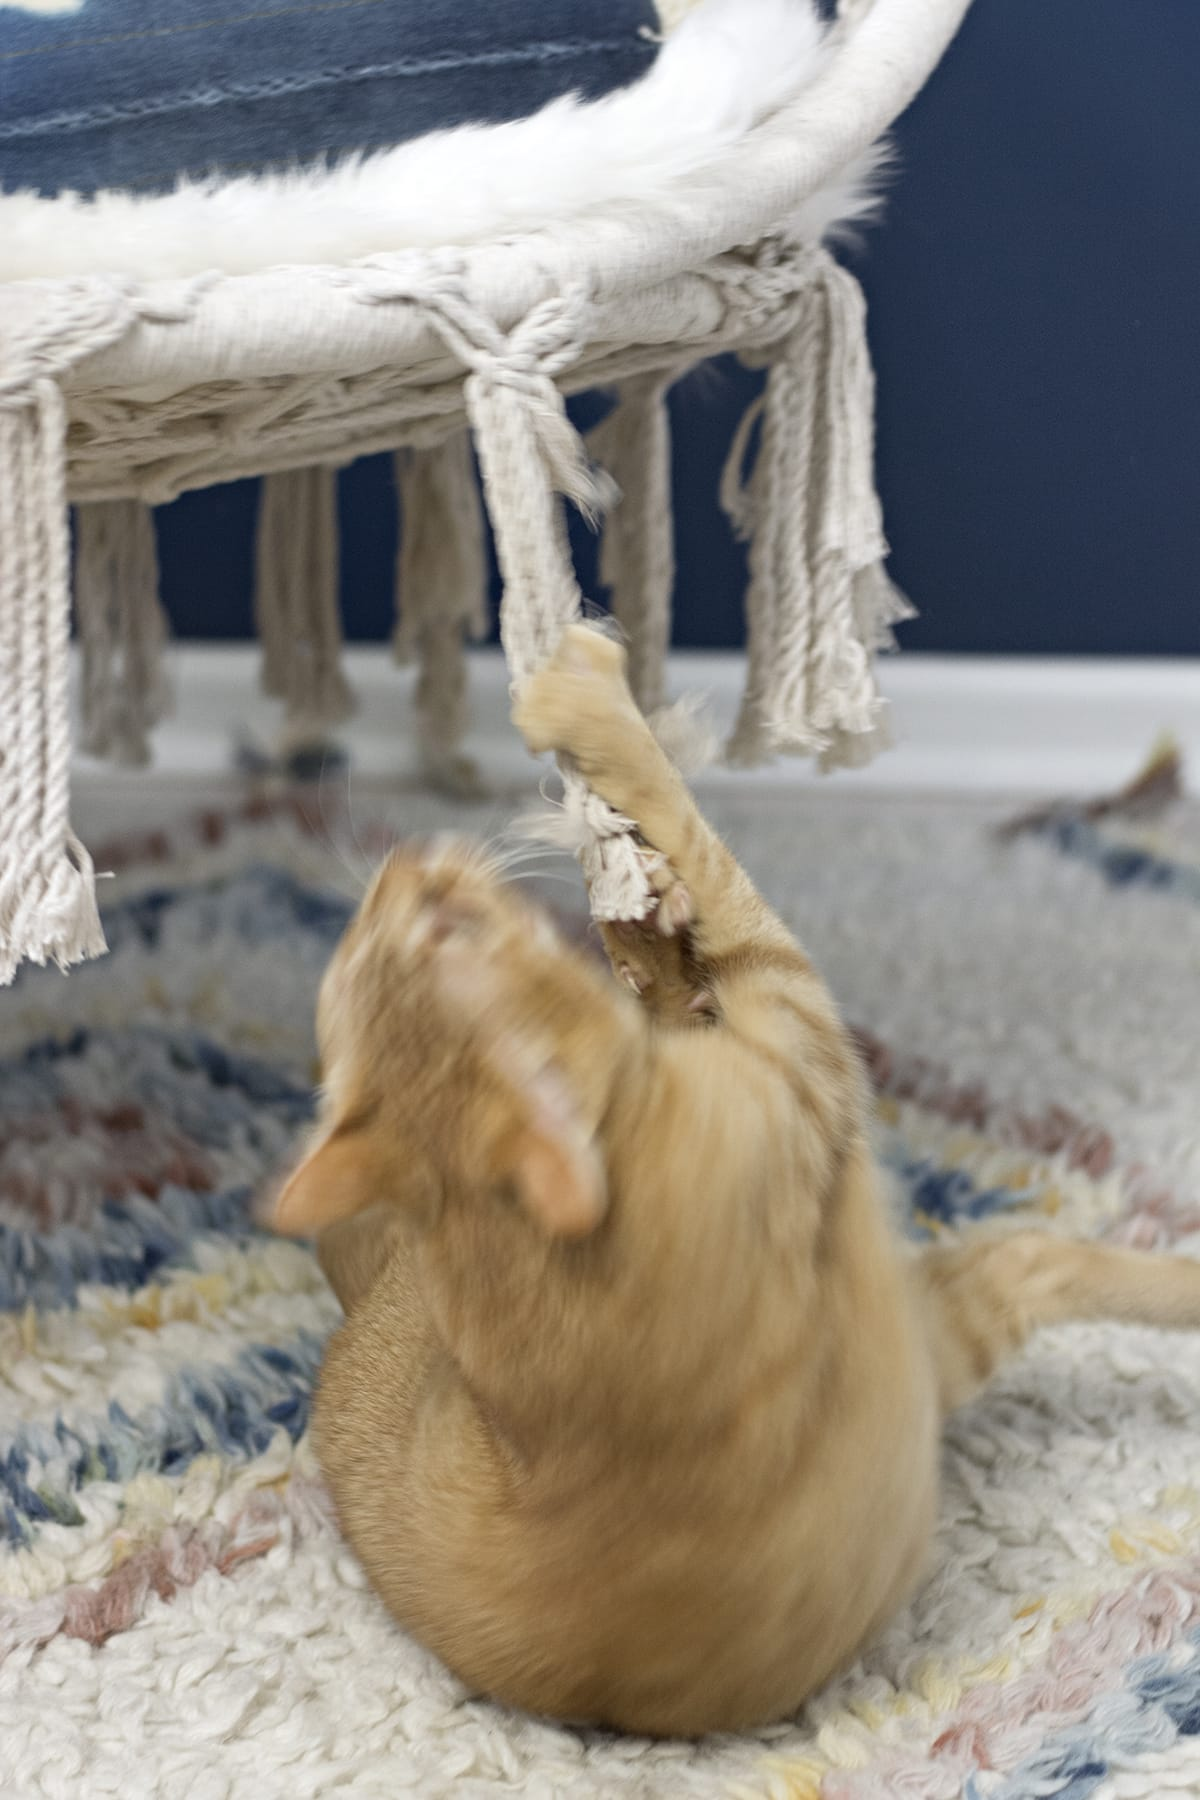 cat attacking a macrame hanging chair